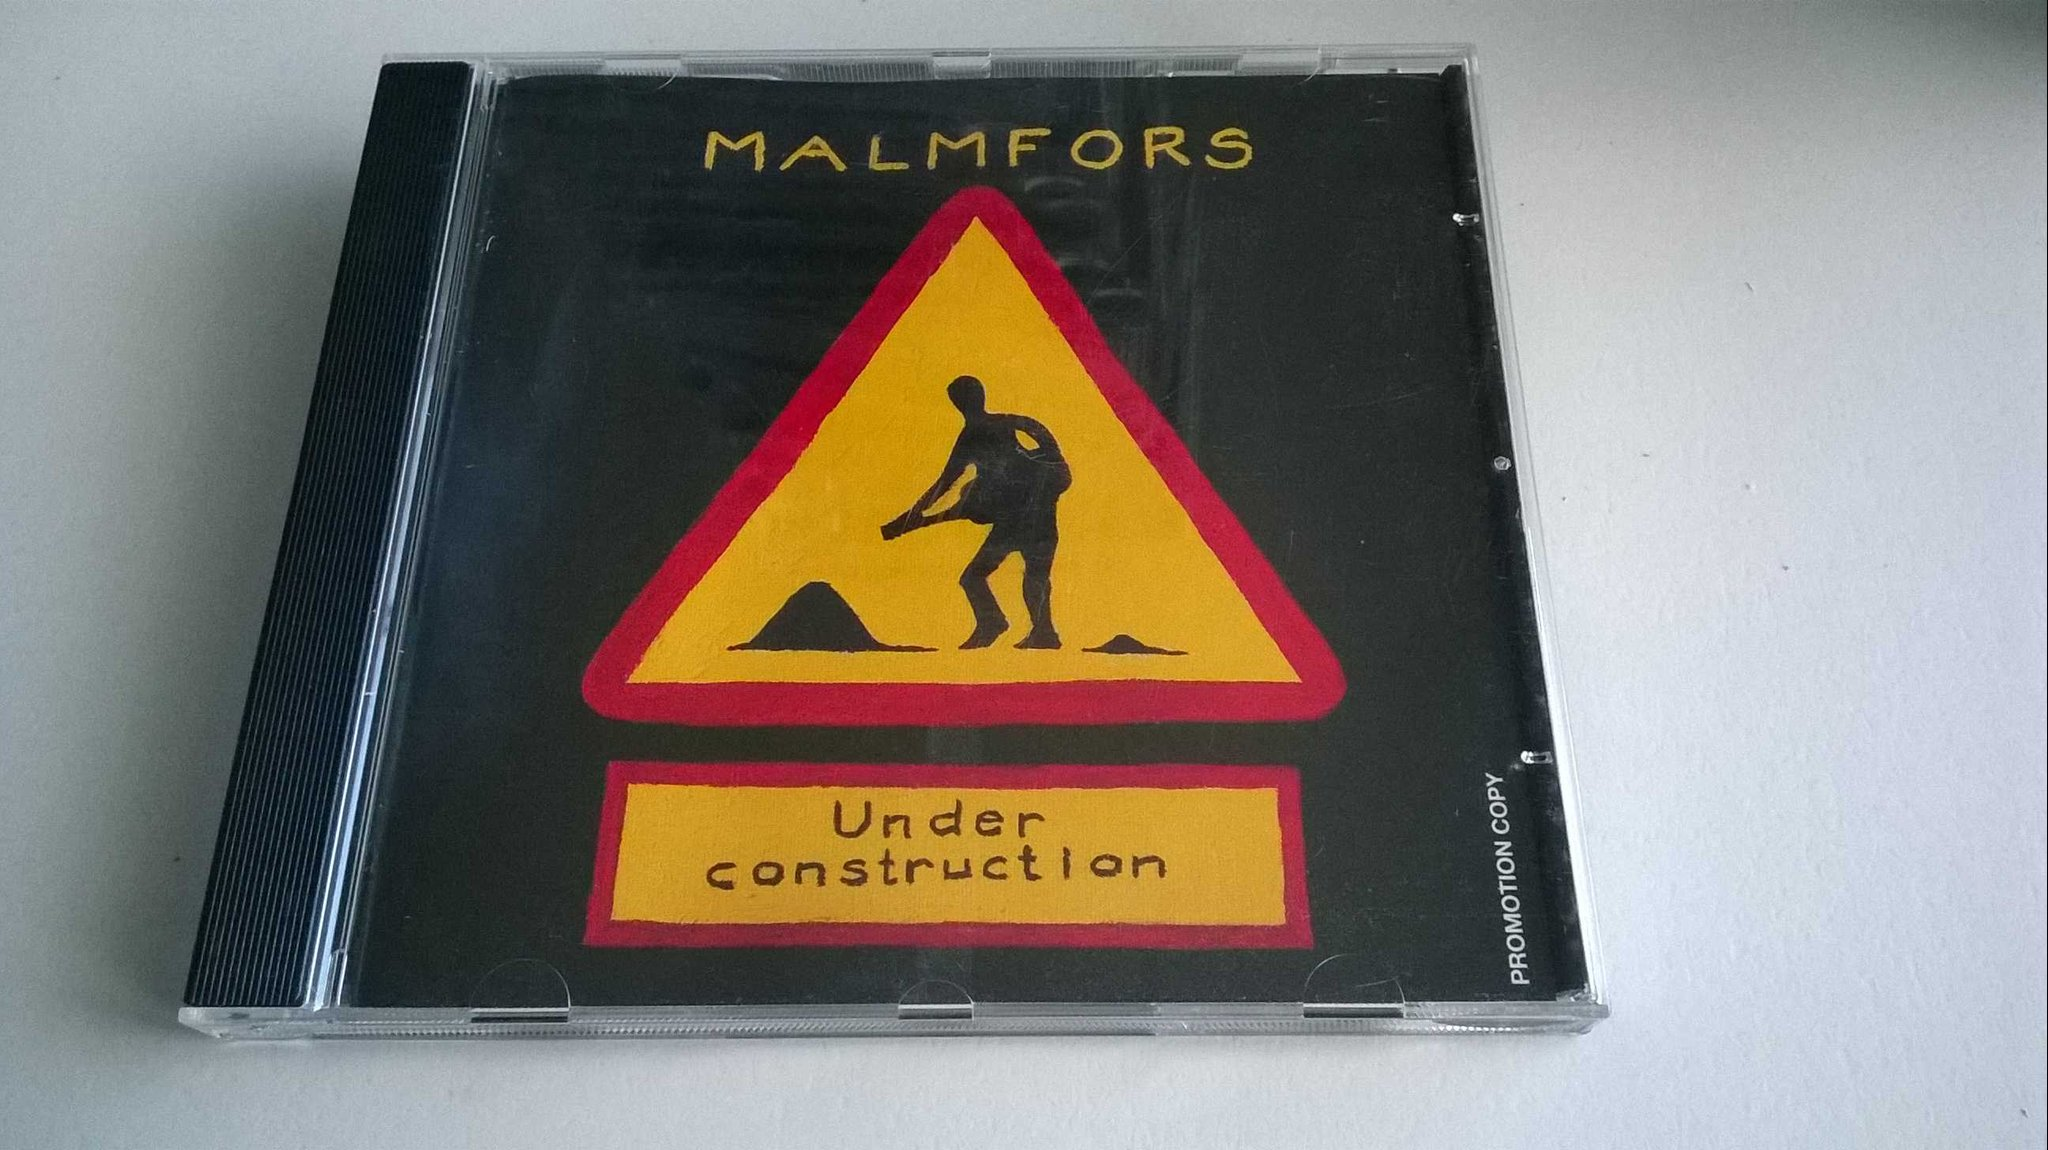 Malmfors - Under construction, CD, Album, Promotion